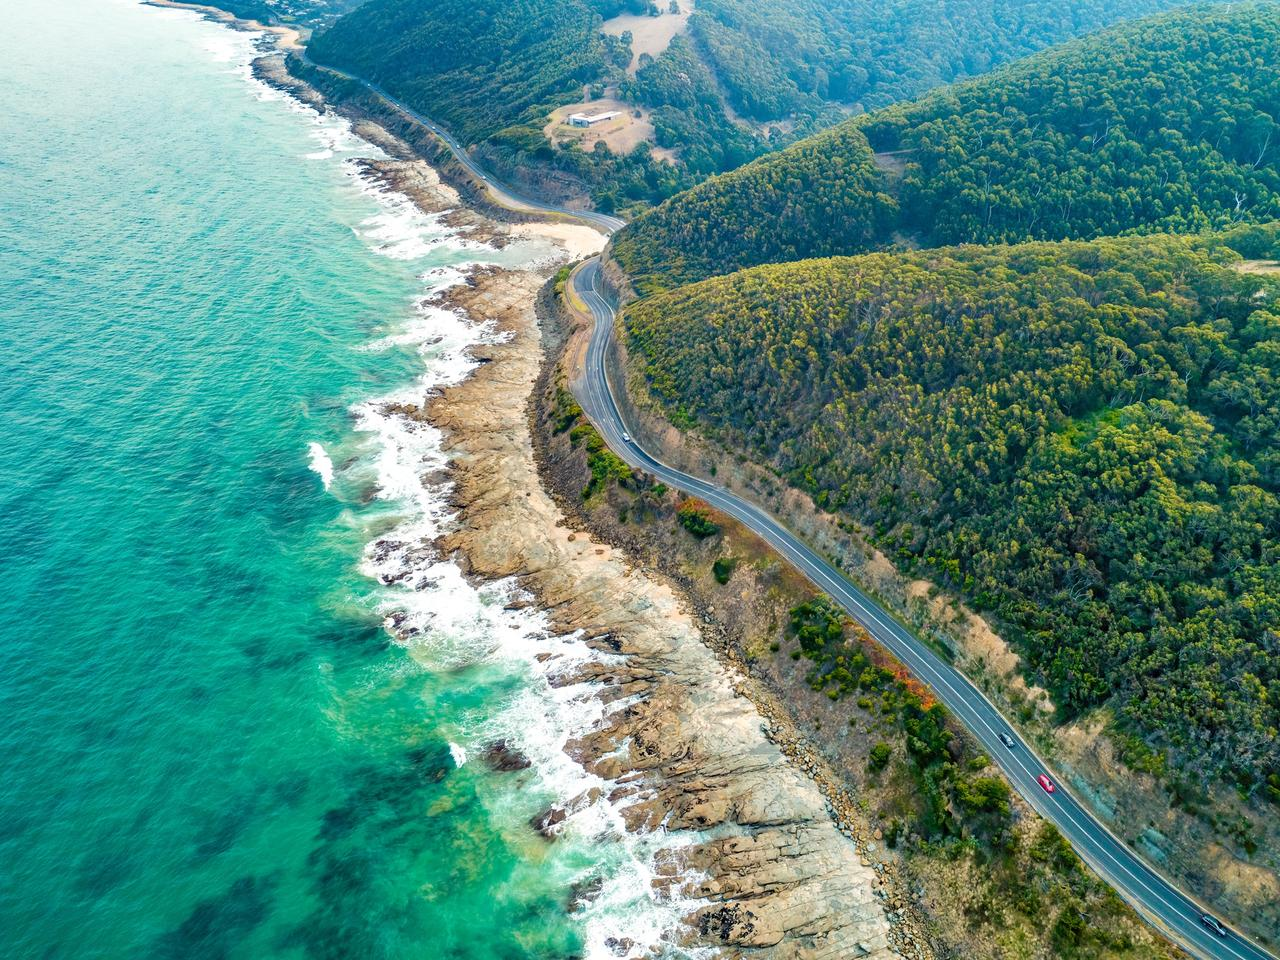 5. Great Ocean Road, Australia